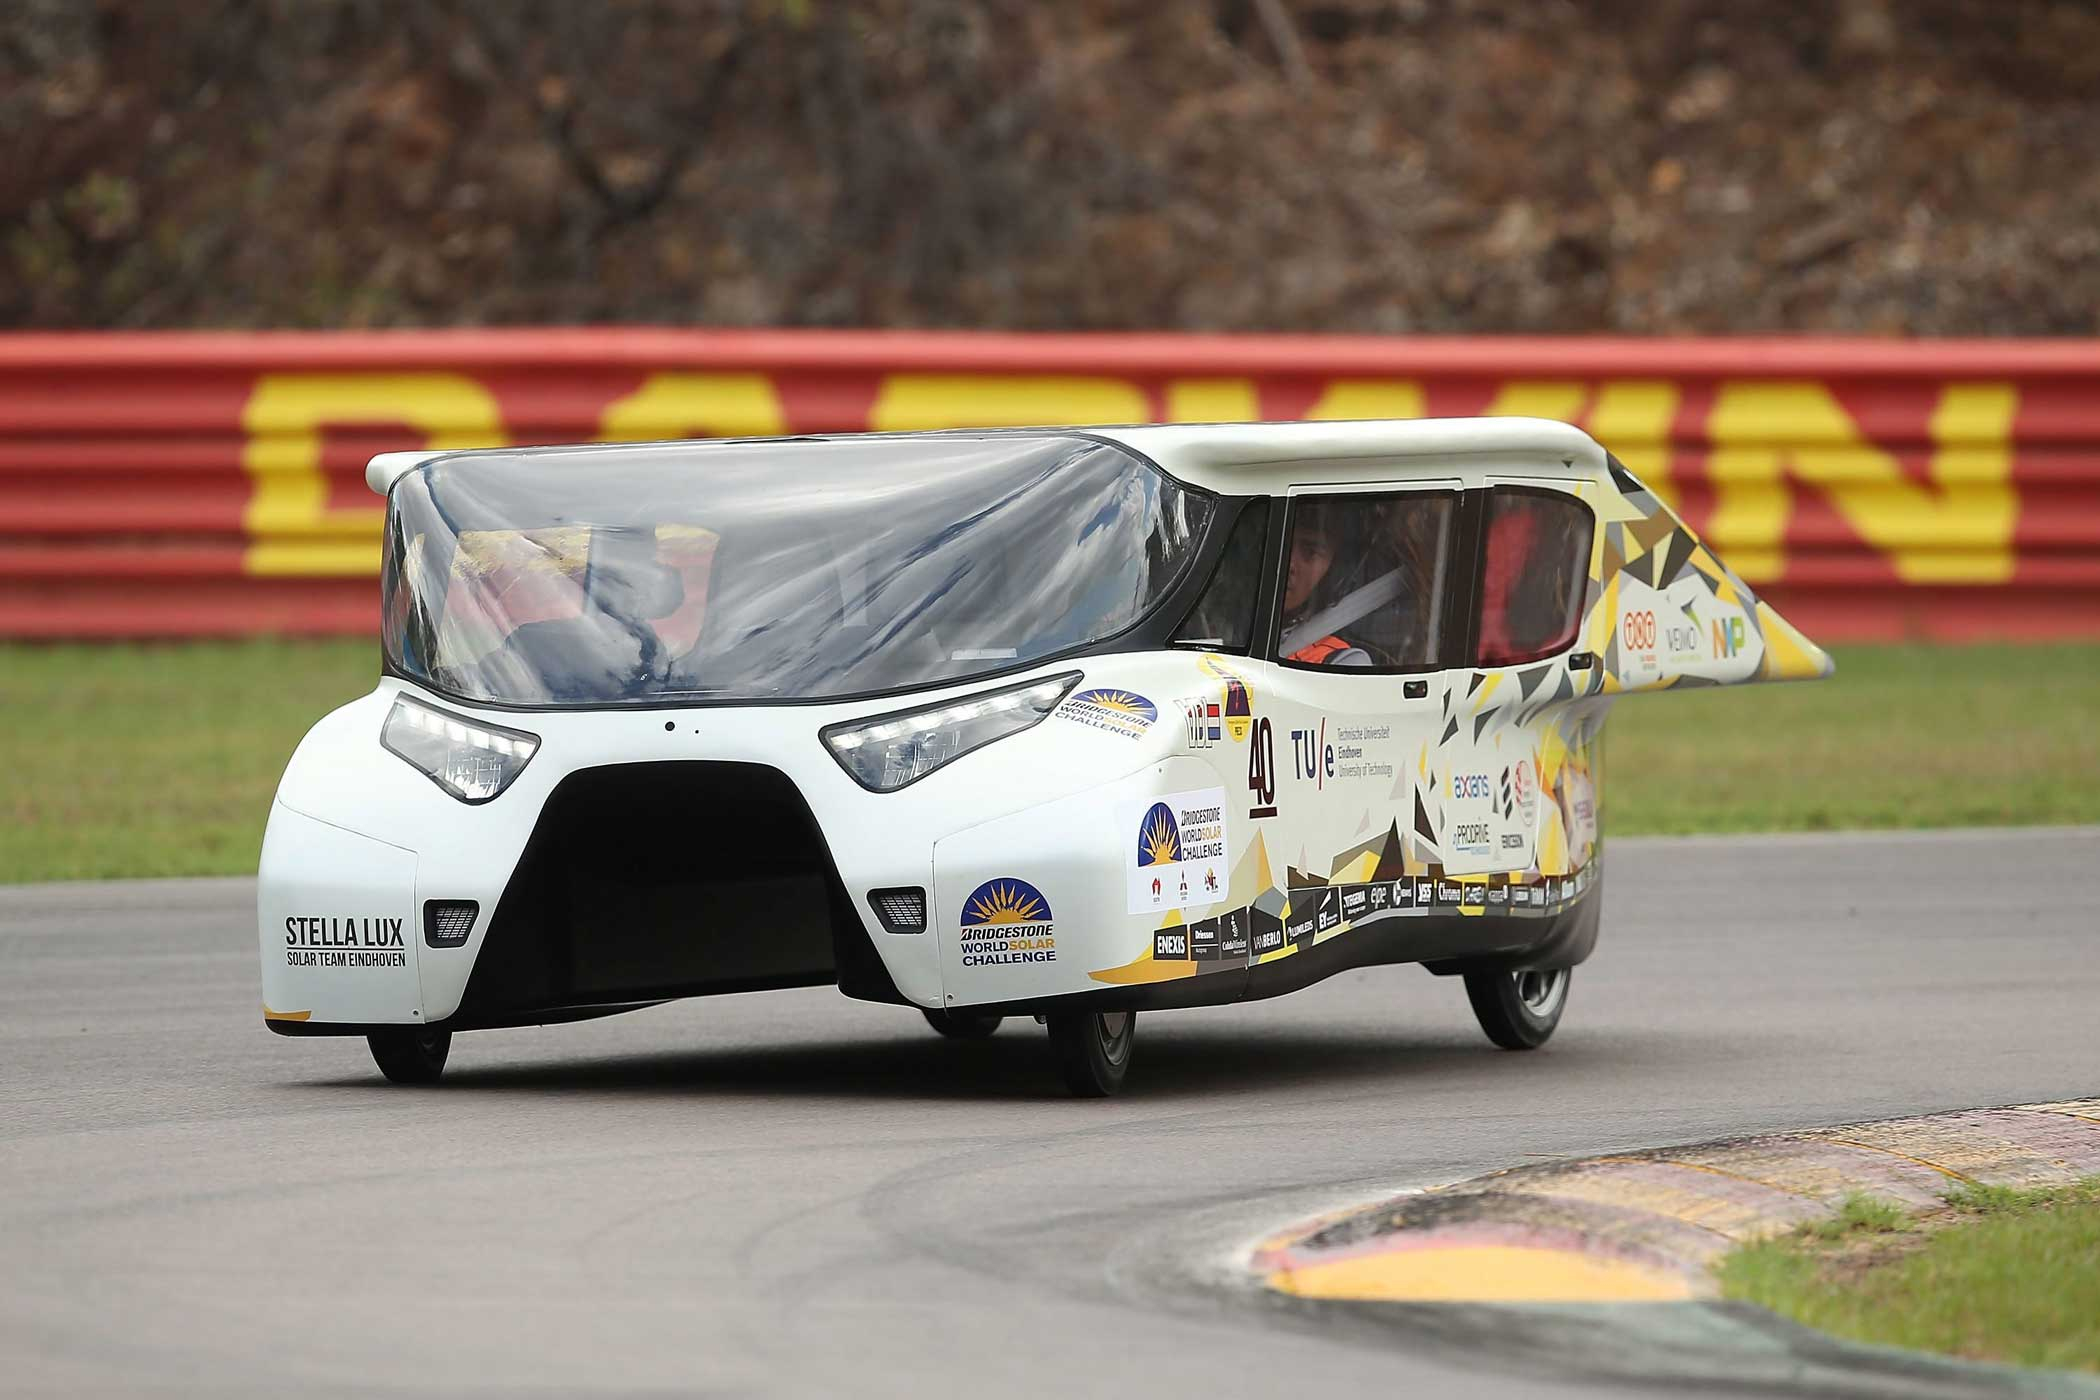 Solar Team Eindhoven's Stella Lux during track testing on Oct. 15, 2015.